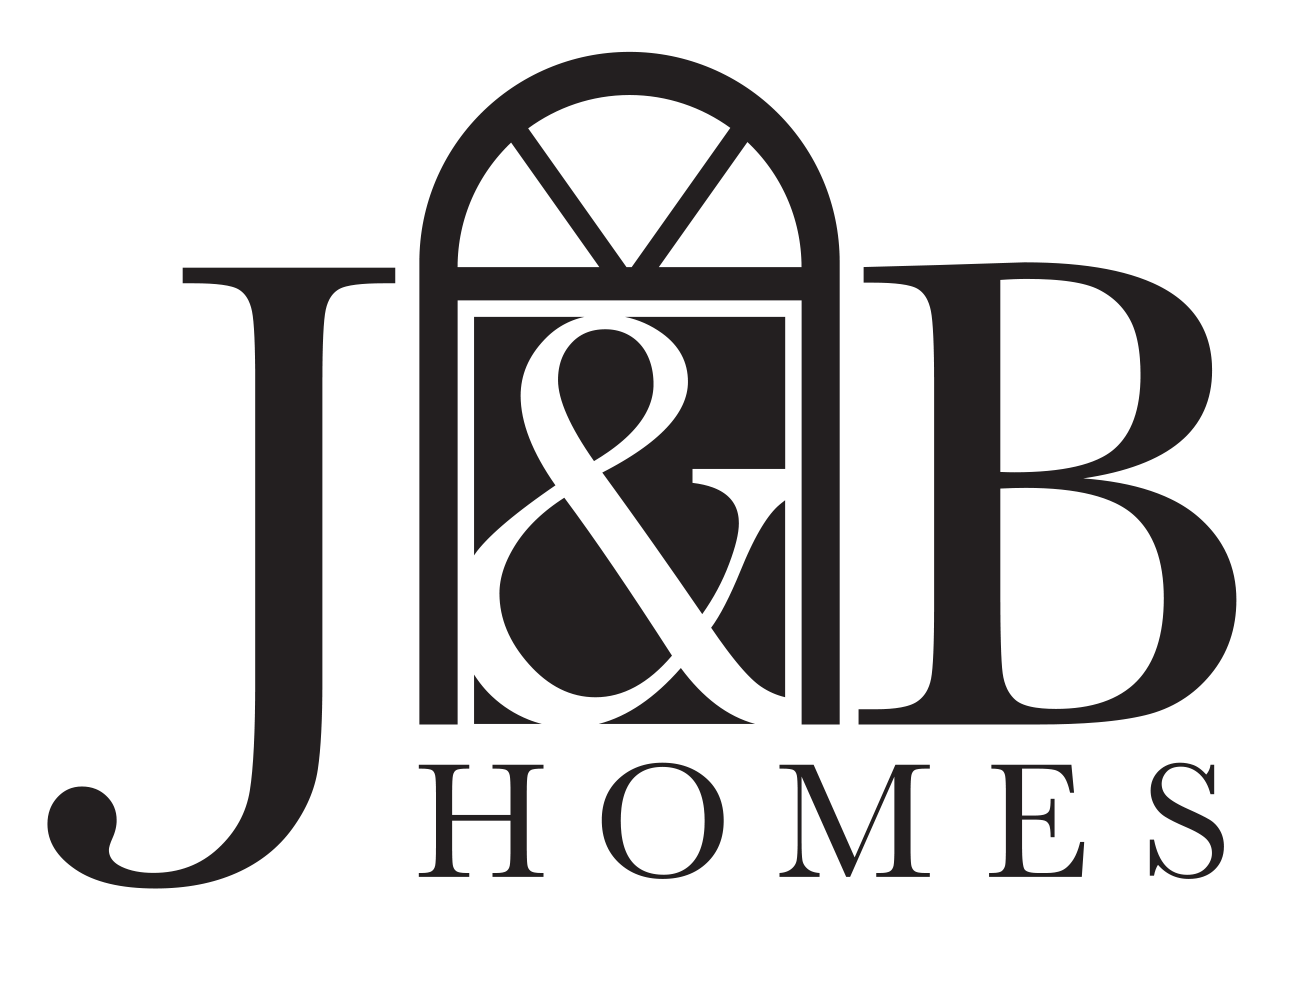 J&B Homes, LTD. Co.